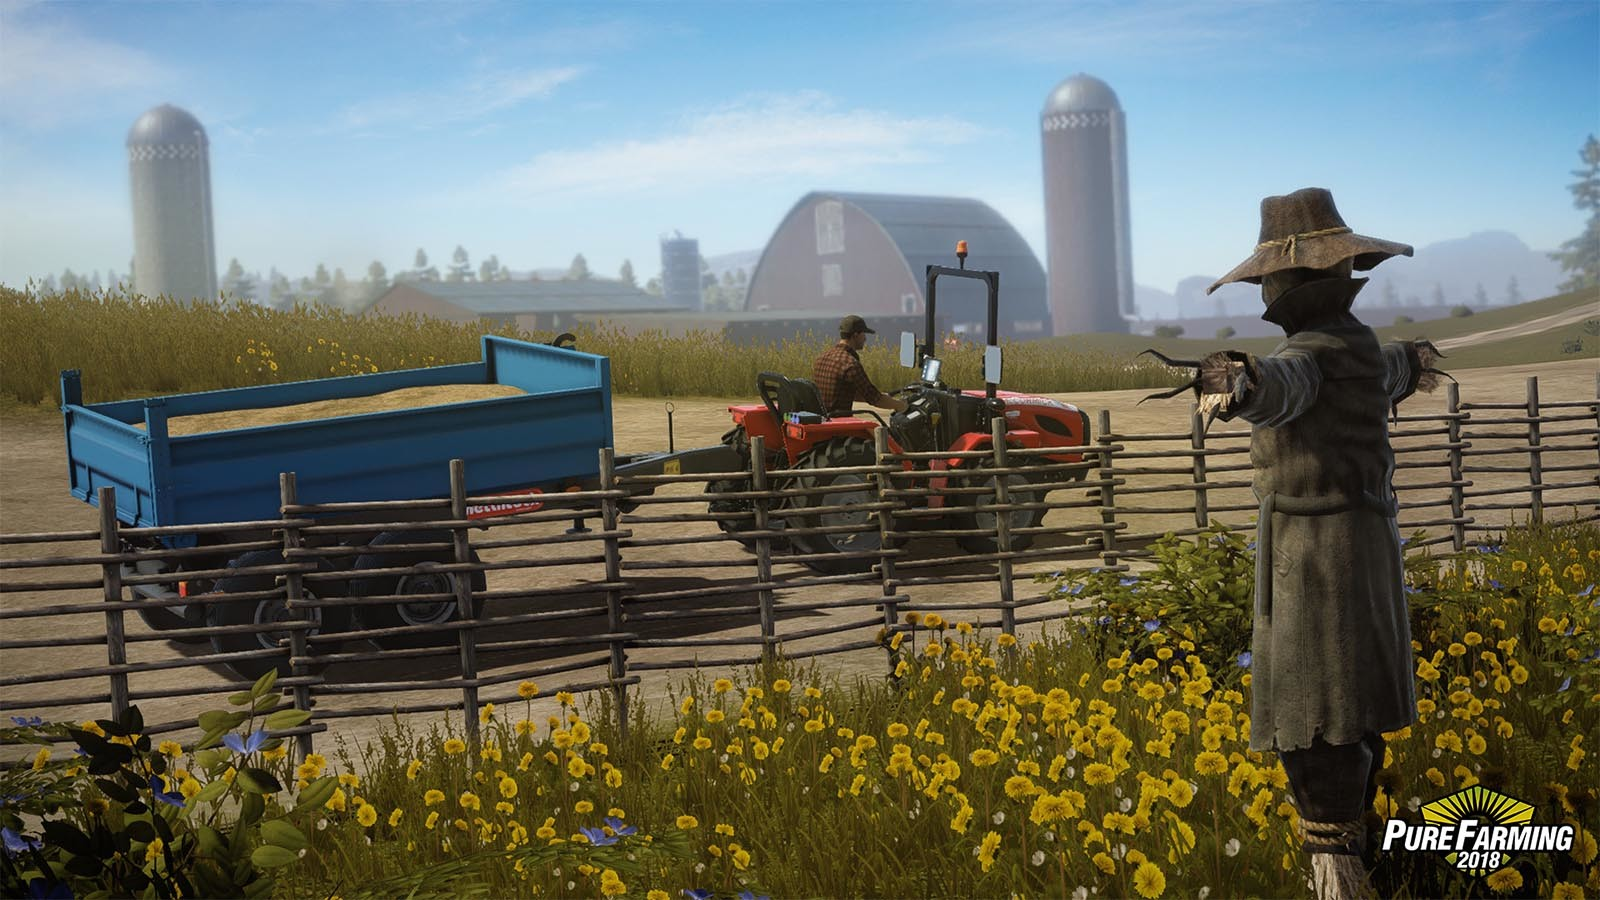 Pure Farming 2018 - Deluxe Edition [Steam CD Key] for PC - Buy now